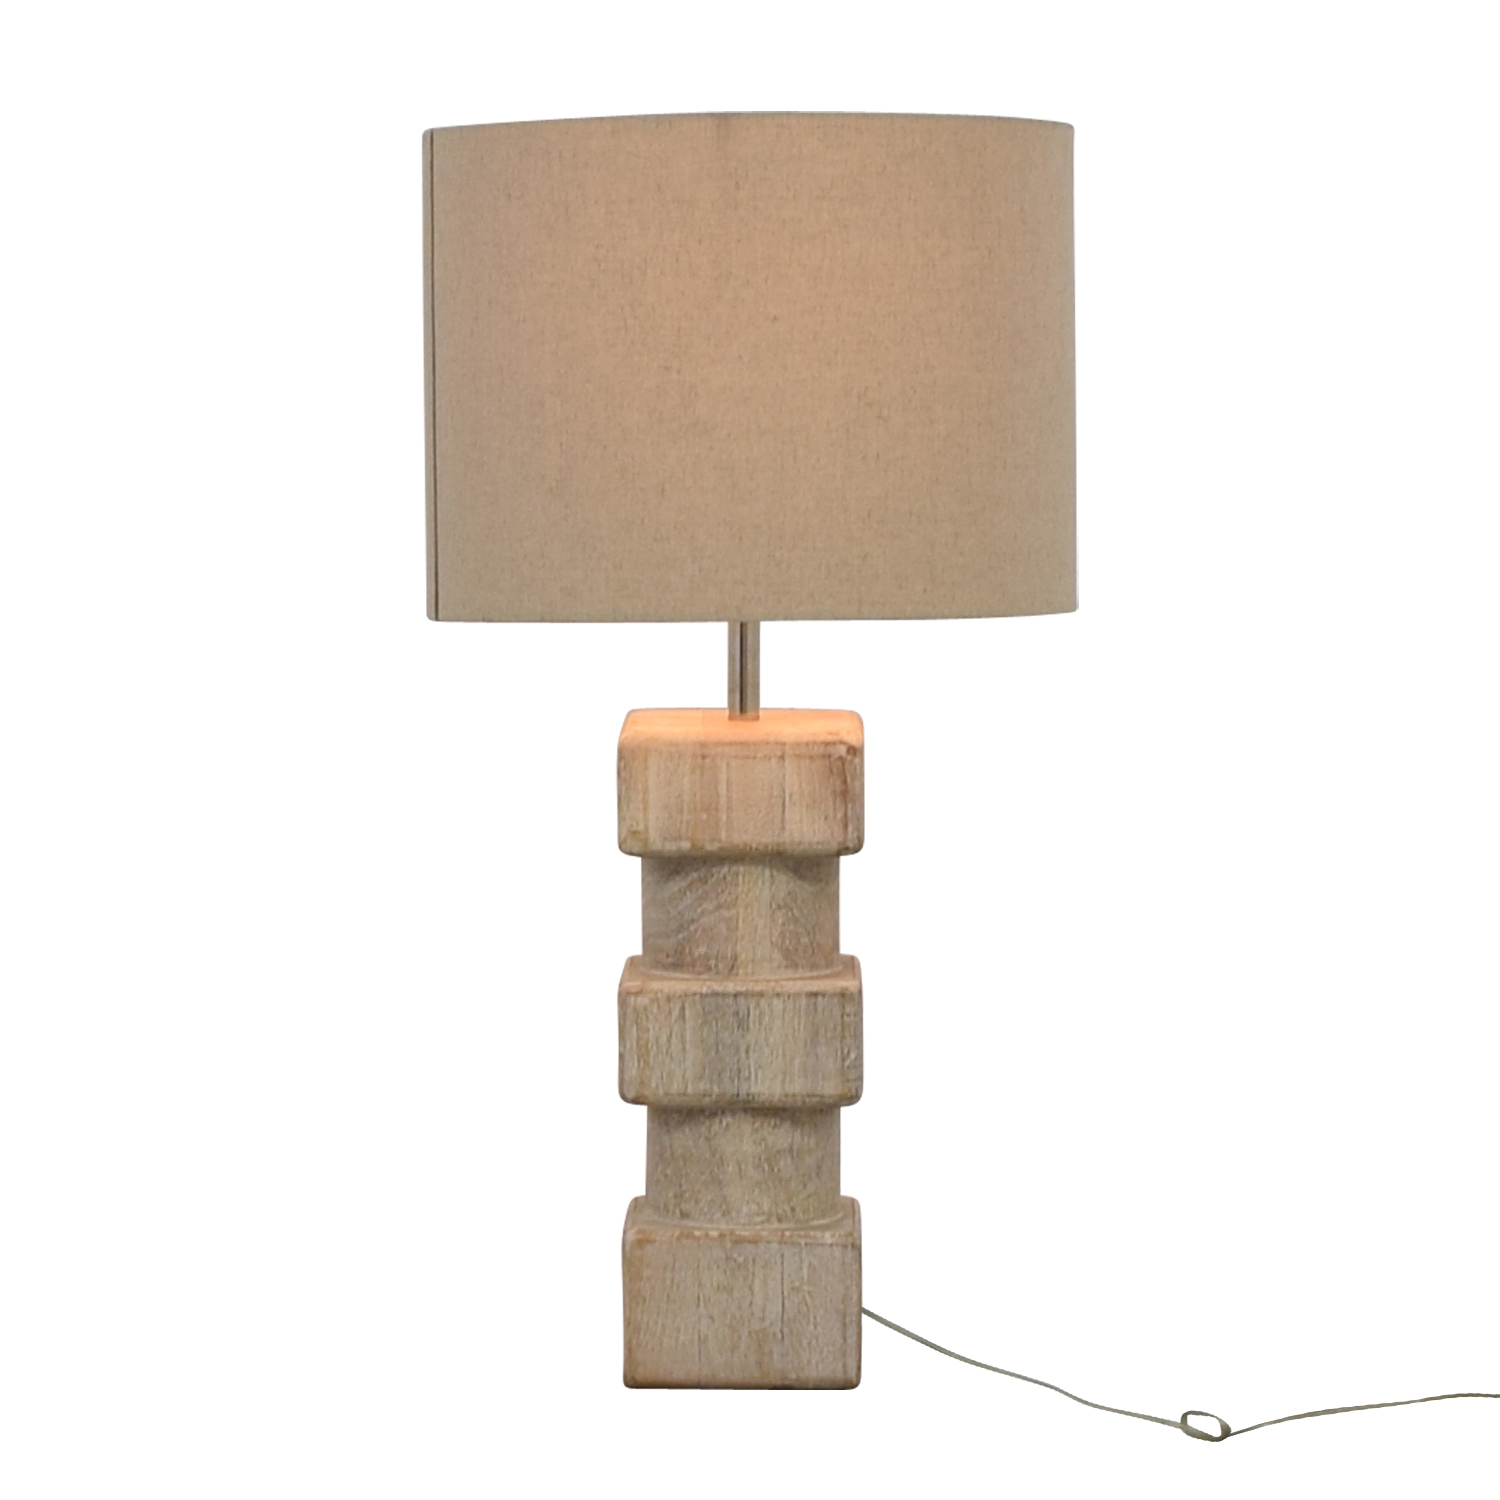 West Elm West Elm Table Lamp dimensions